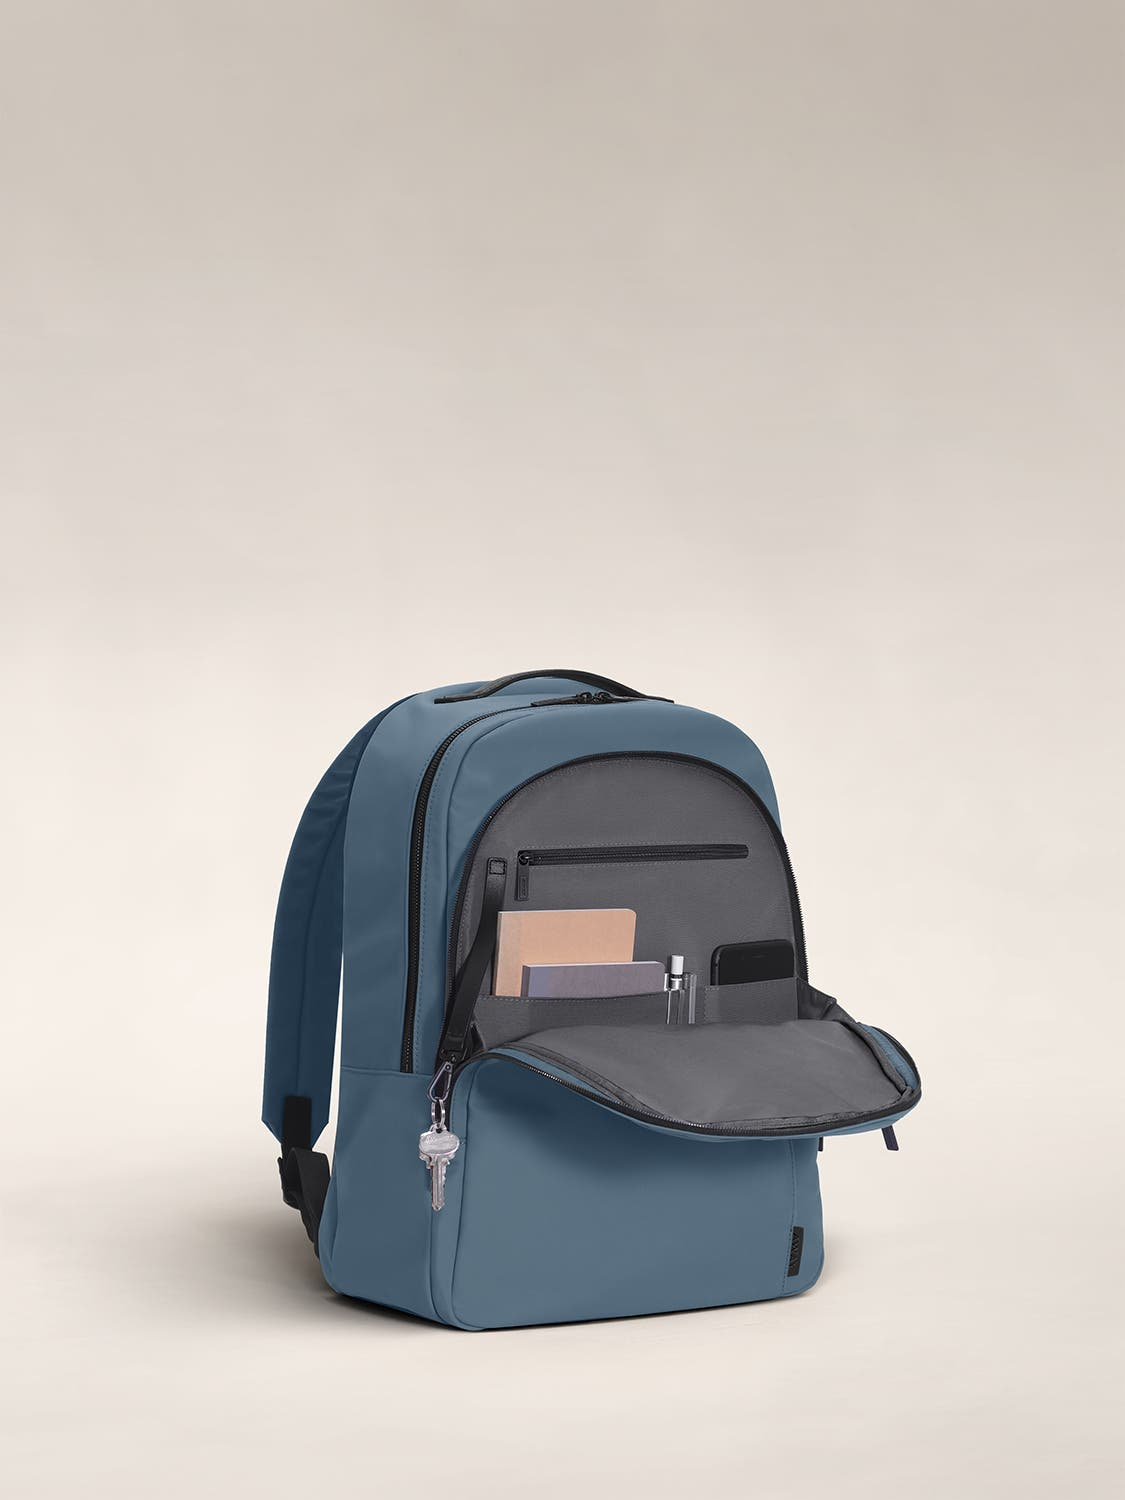 Open front flap of a coast blue backpack with organized pockets shown with notebooks.